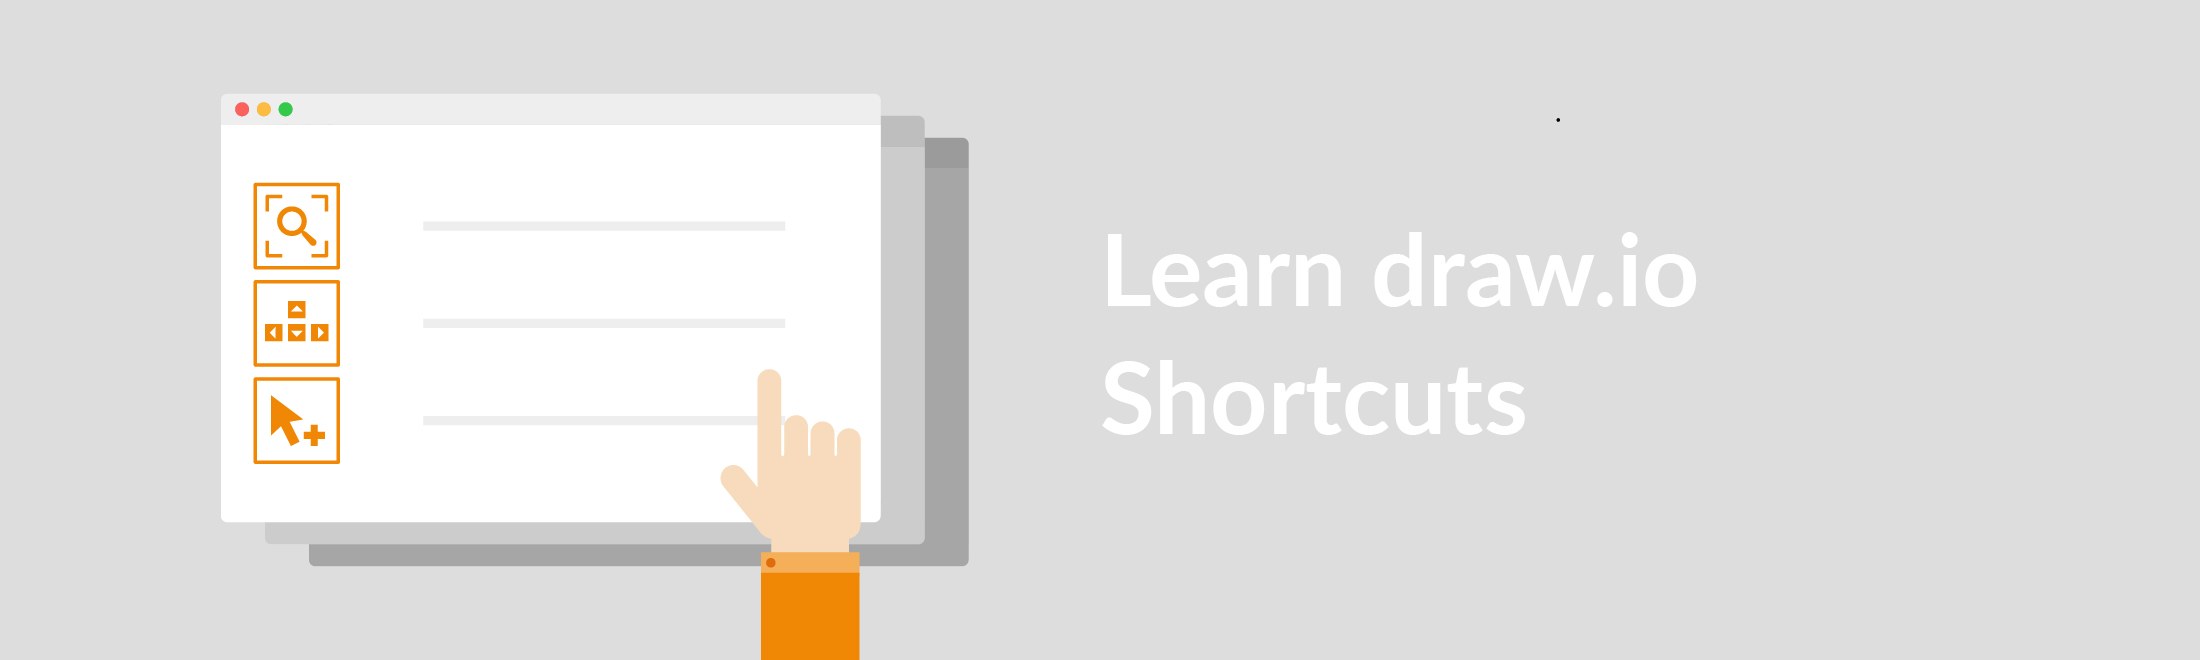 Get things done faster with keyboard shortcuts in draw.io